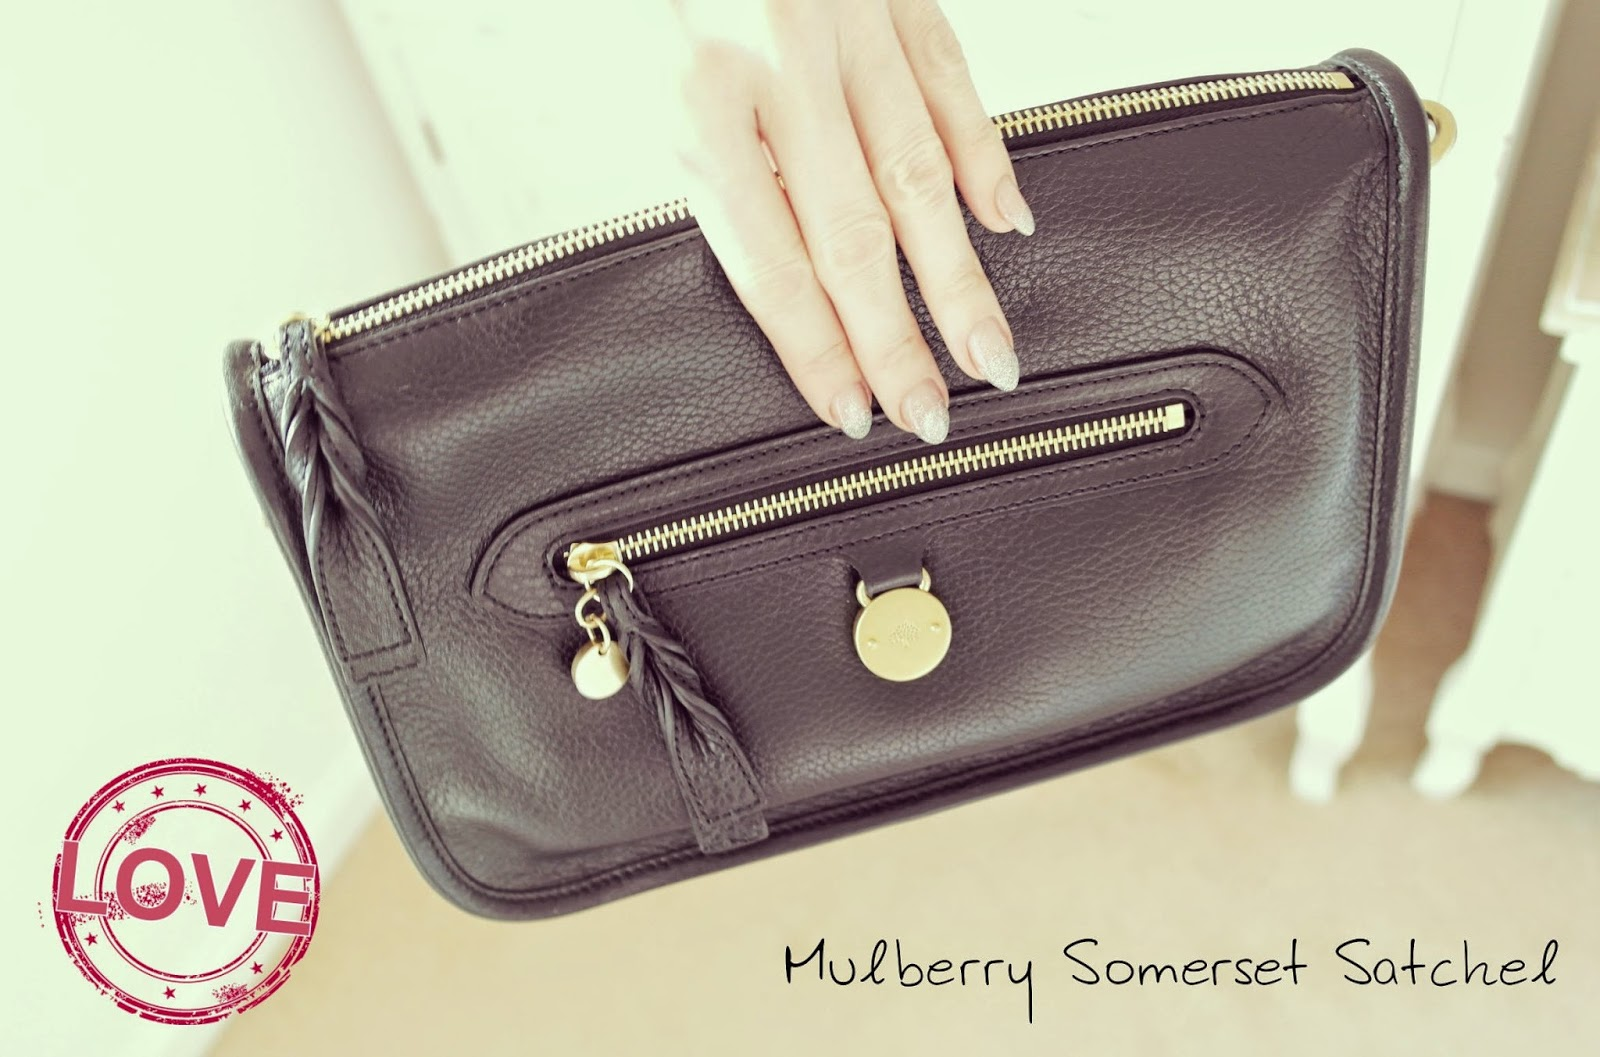 Mulberry Somerset Satchel from Bicester Village